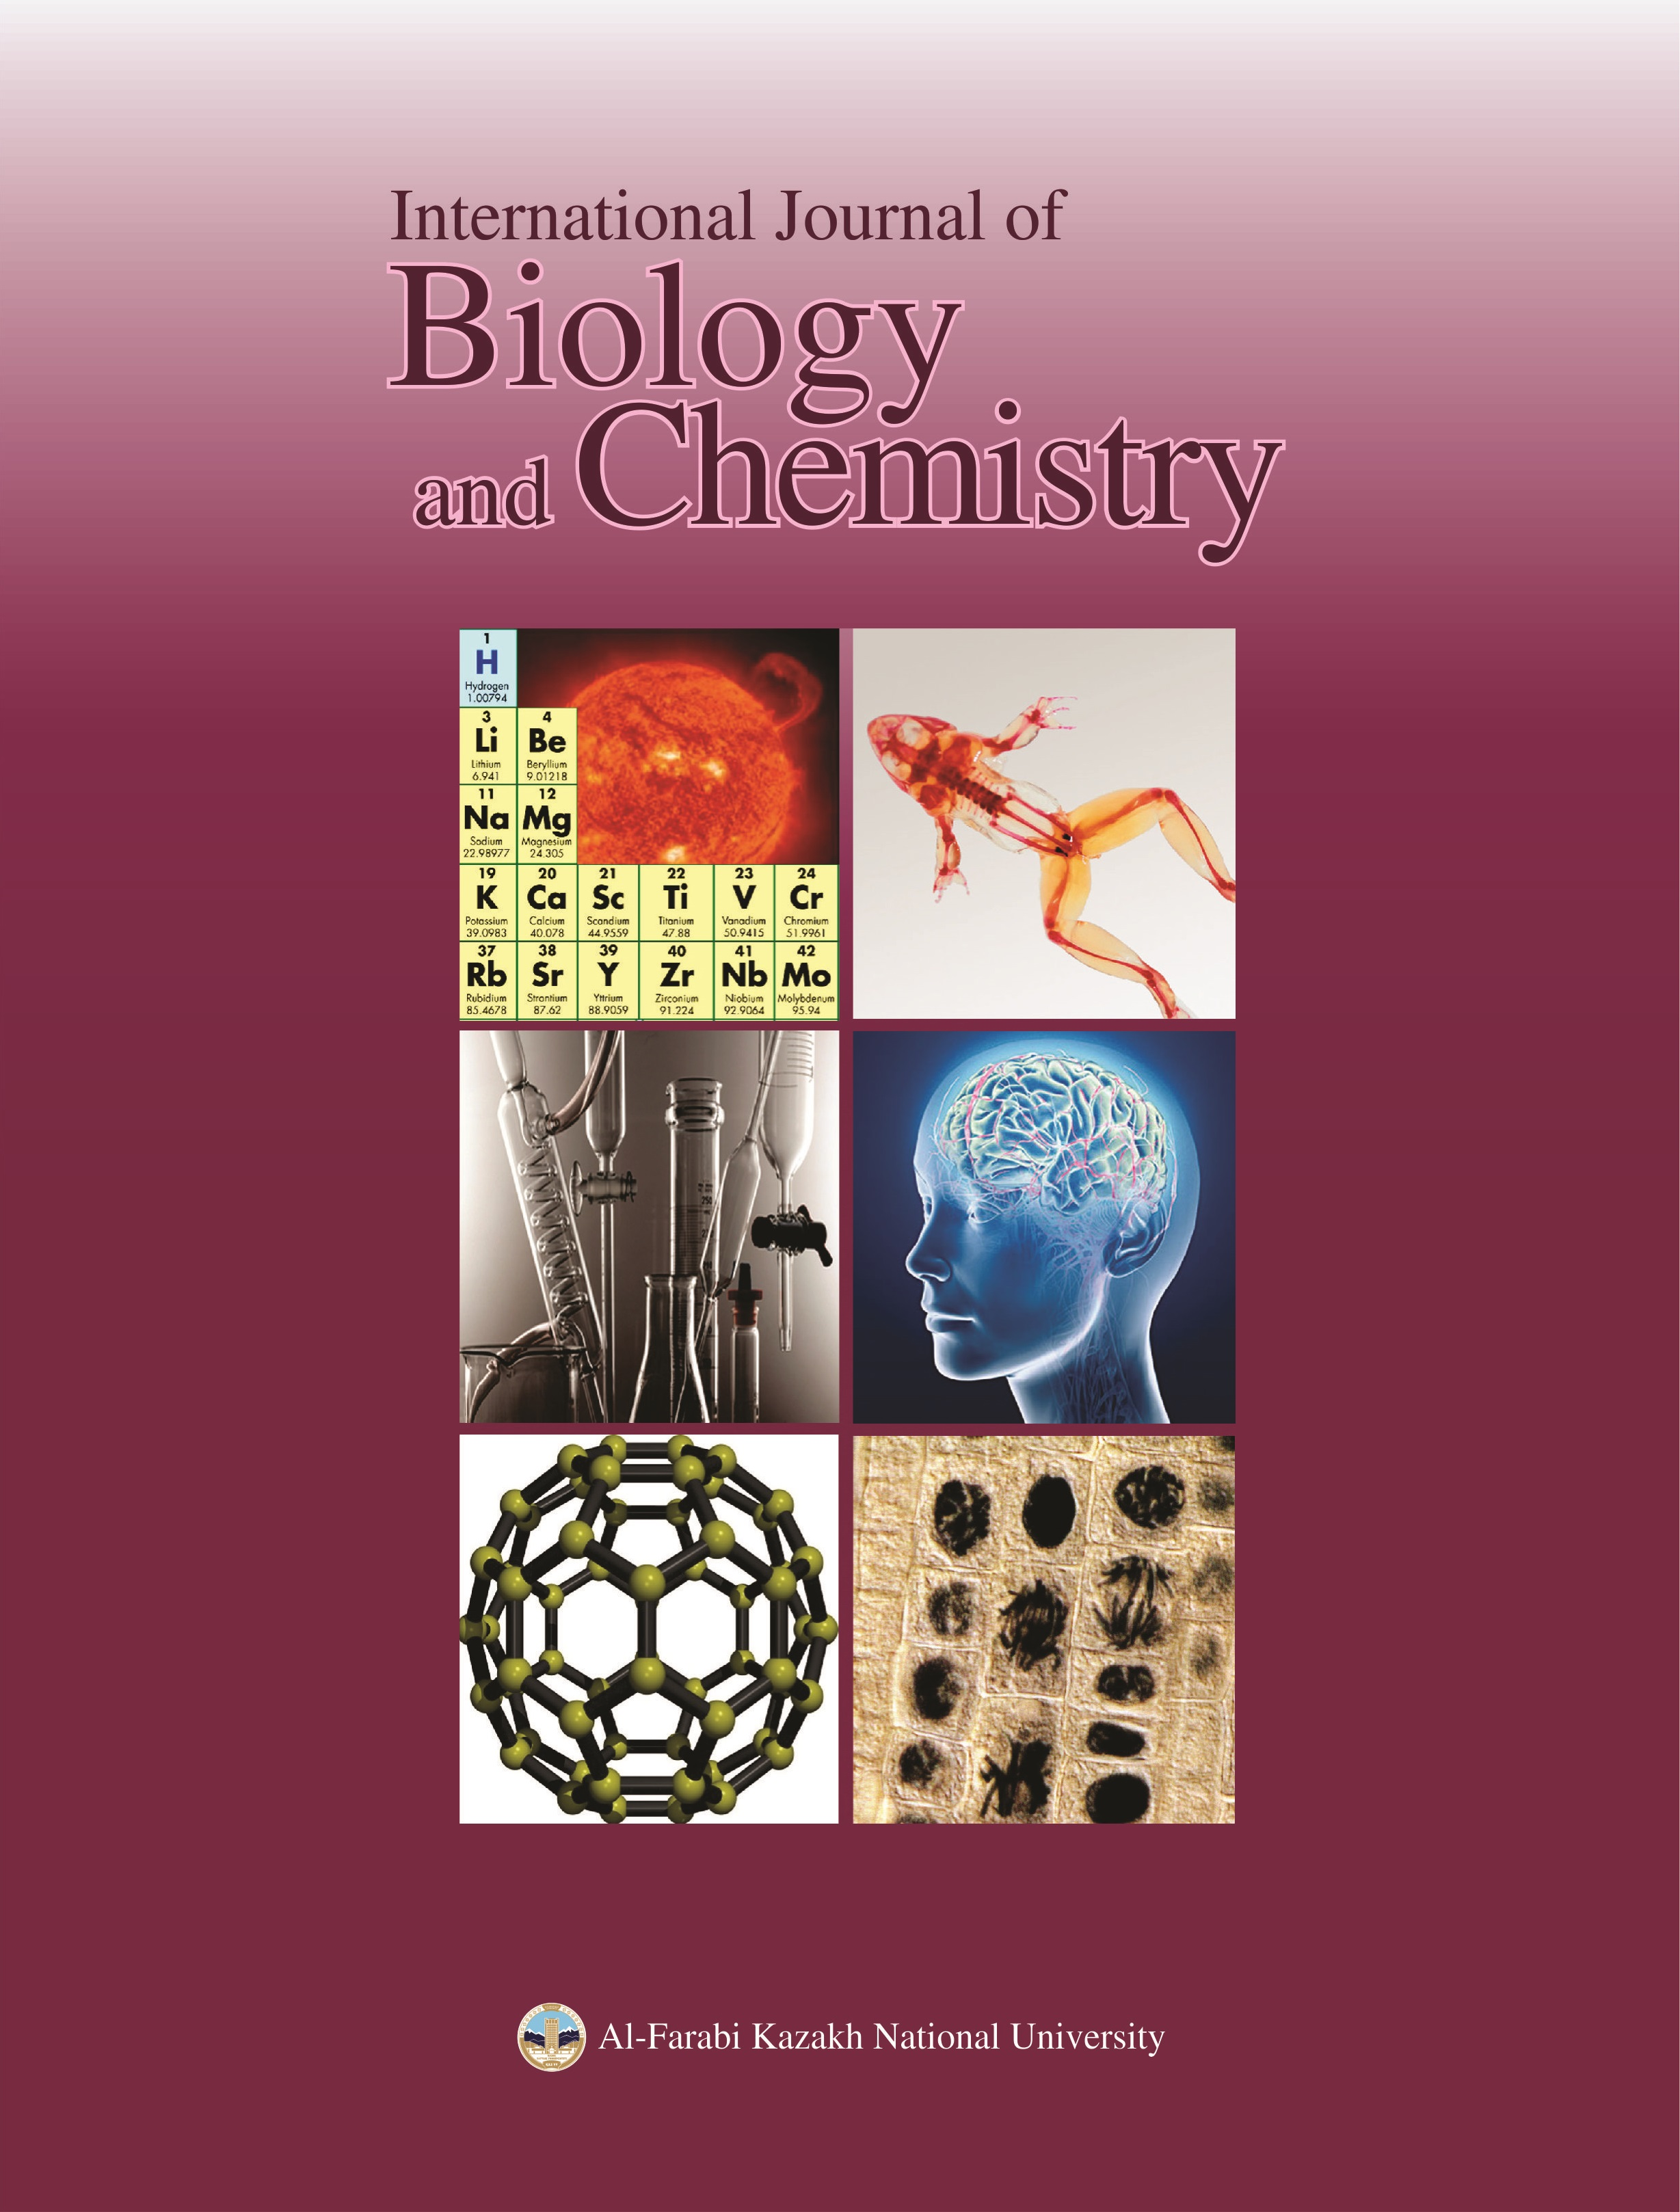 View Vol. 6 No. 2 (2013): International Journal of Biology and Chemistry